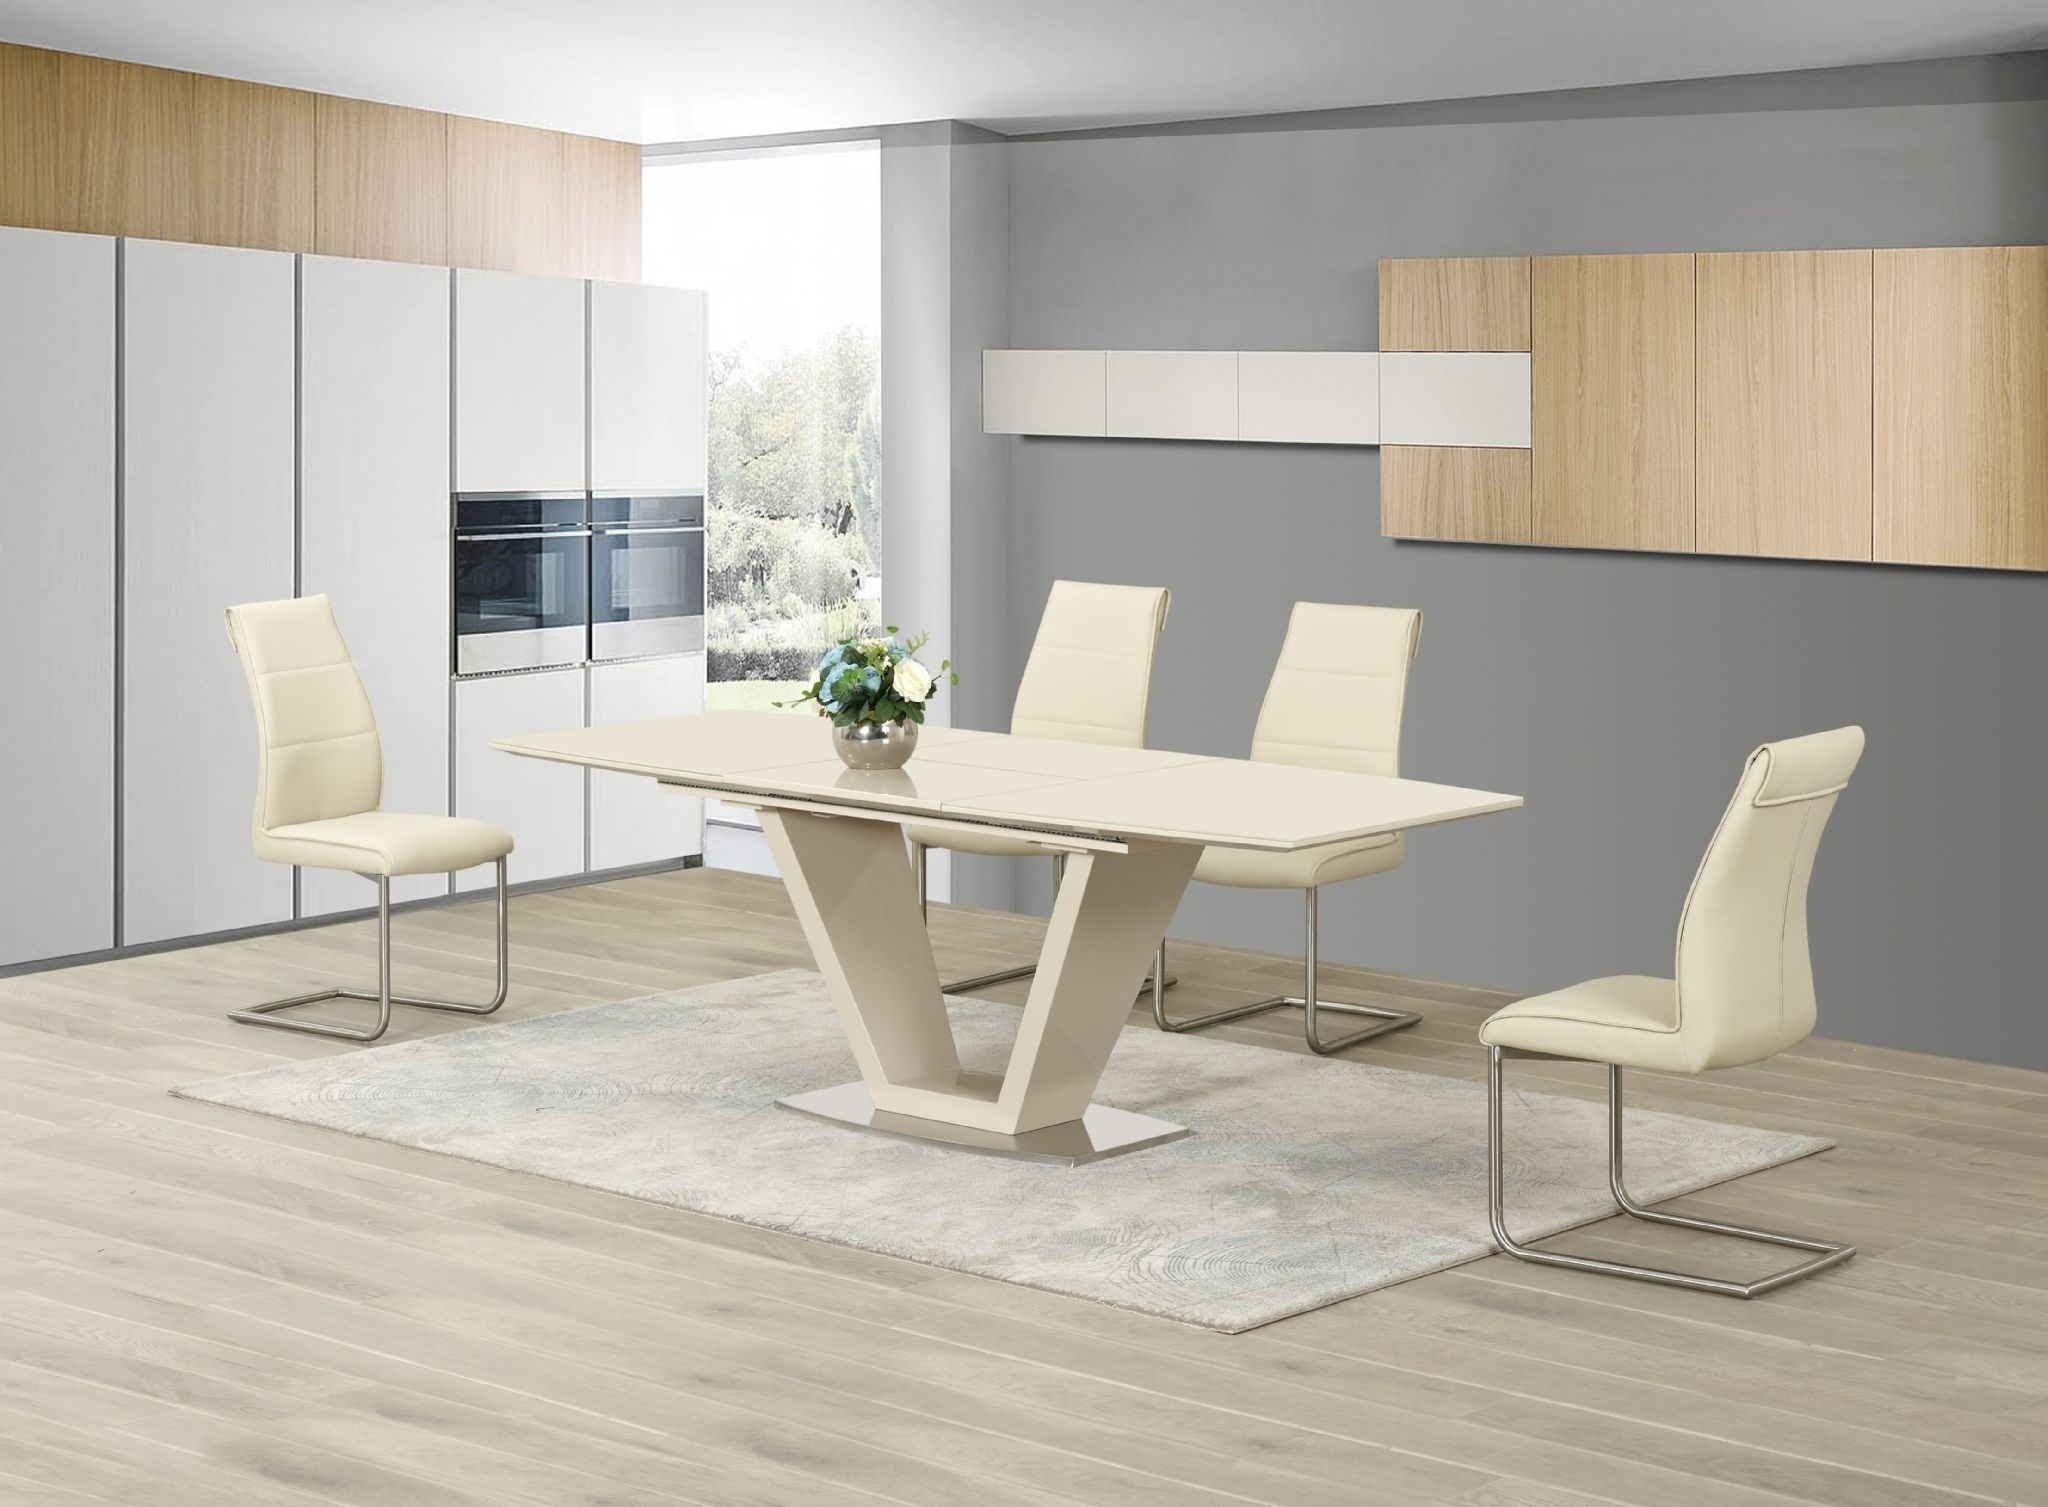 Gloss Dining Tables with Current Ga Loriga Cream Gloss Glass Designer Dining Table Extending 160 220